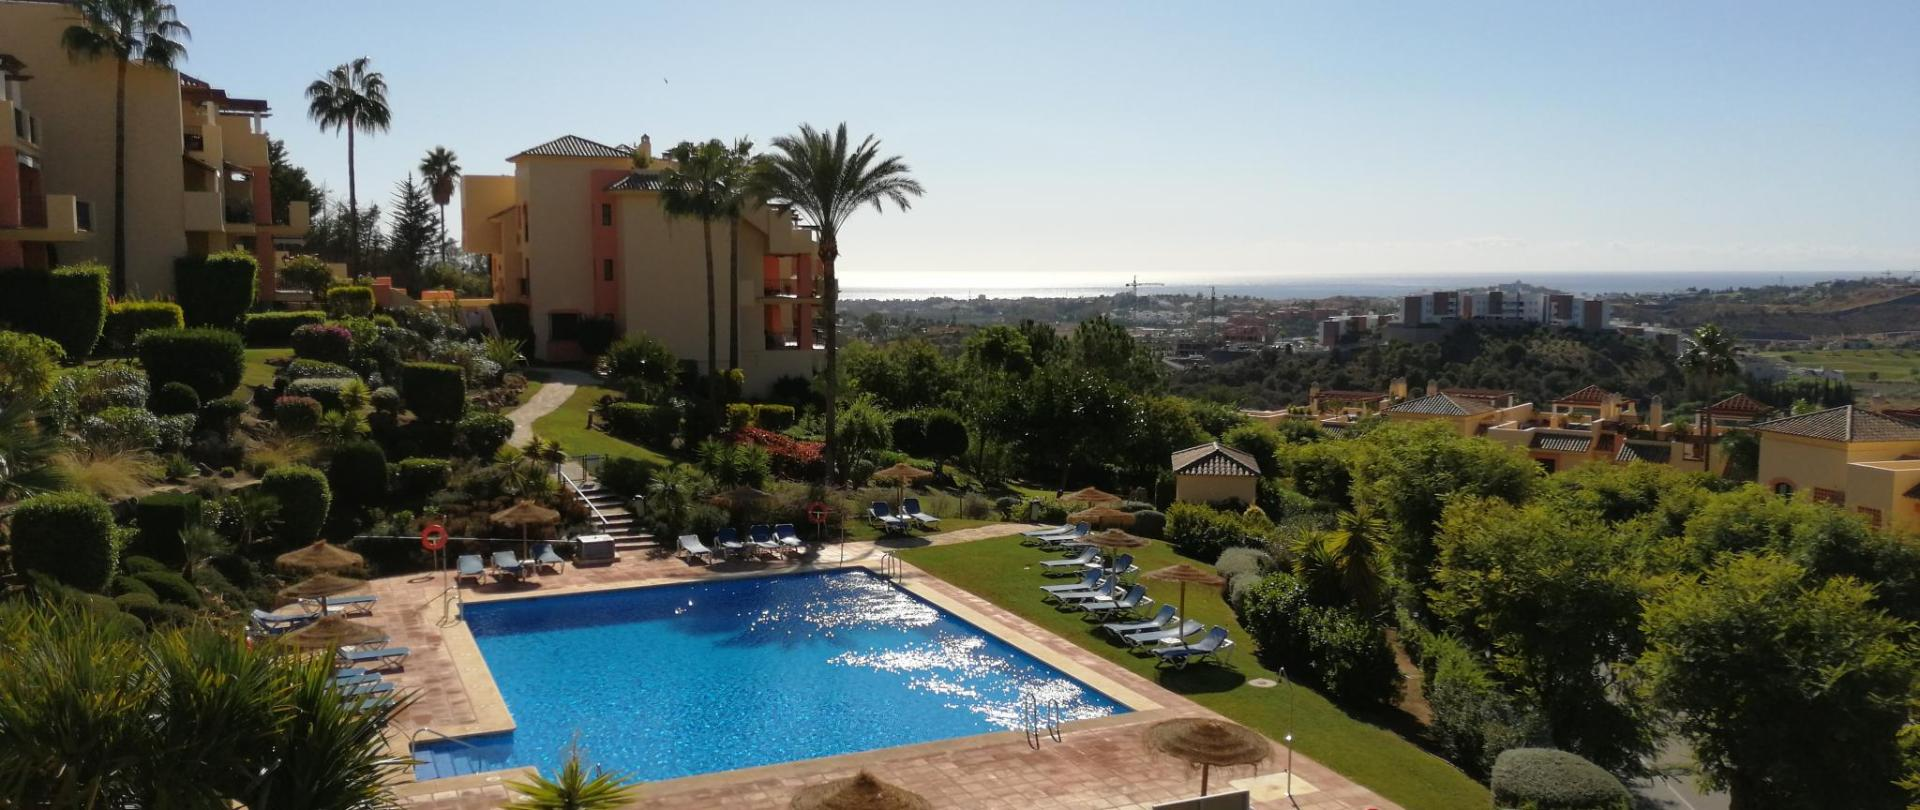 LOS ARQUEROS GOLF APARTMENTS